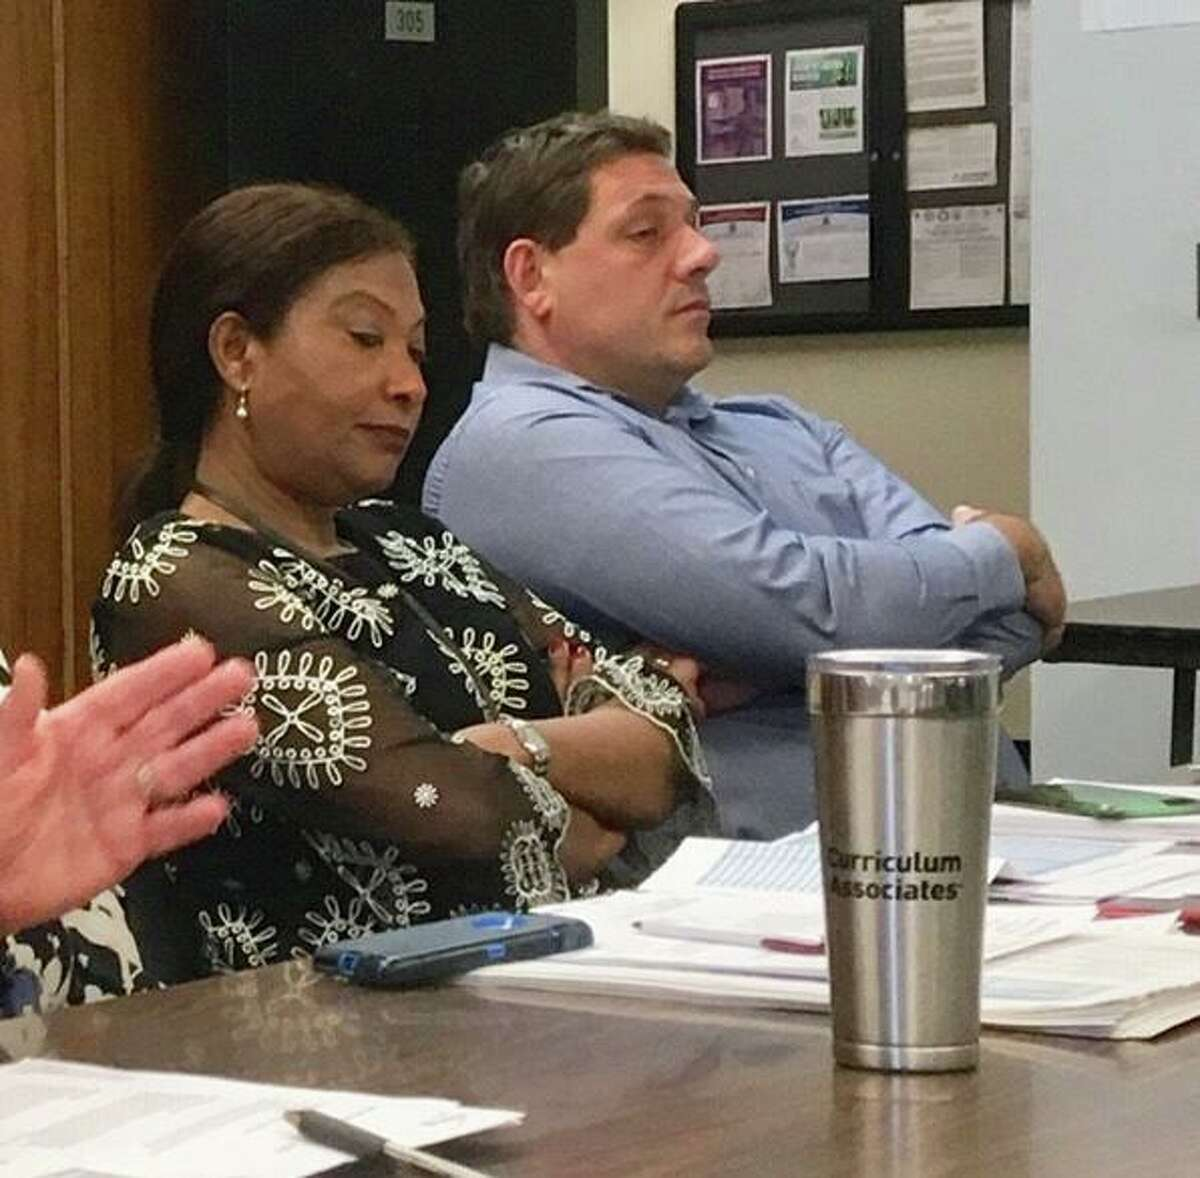 Christiana Otuwa and Michael Testani sit in a committee meeting at City Hall on May 22, 2019.